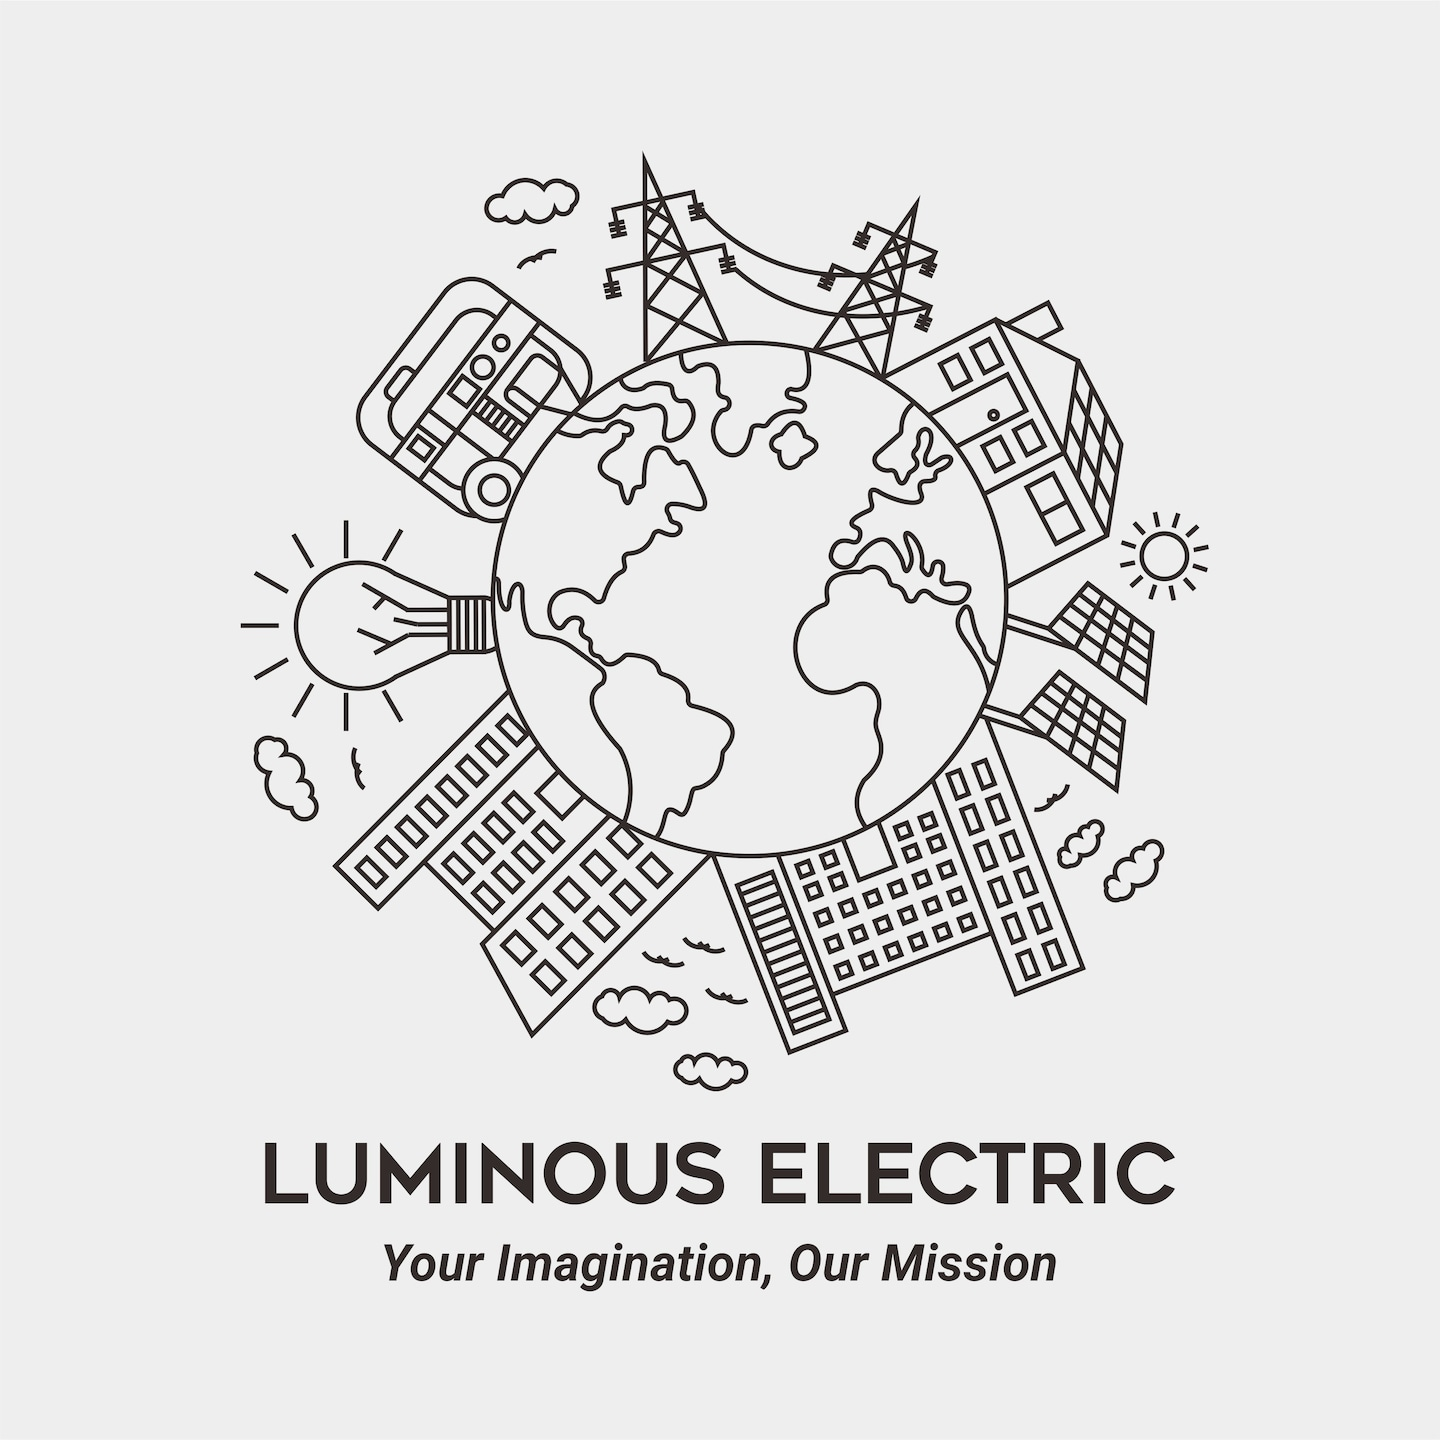 Luminous Electric